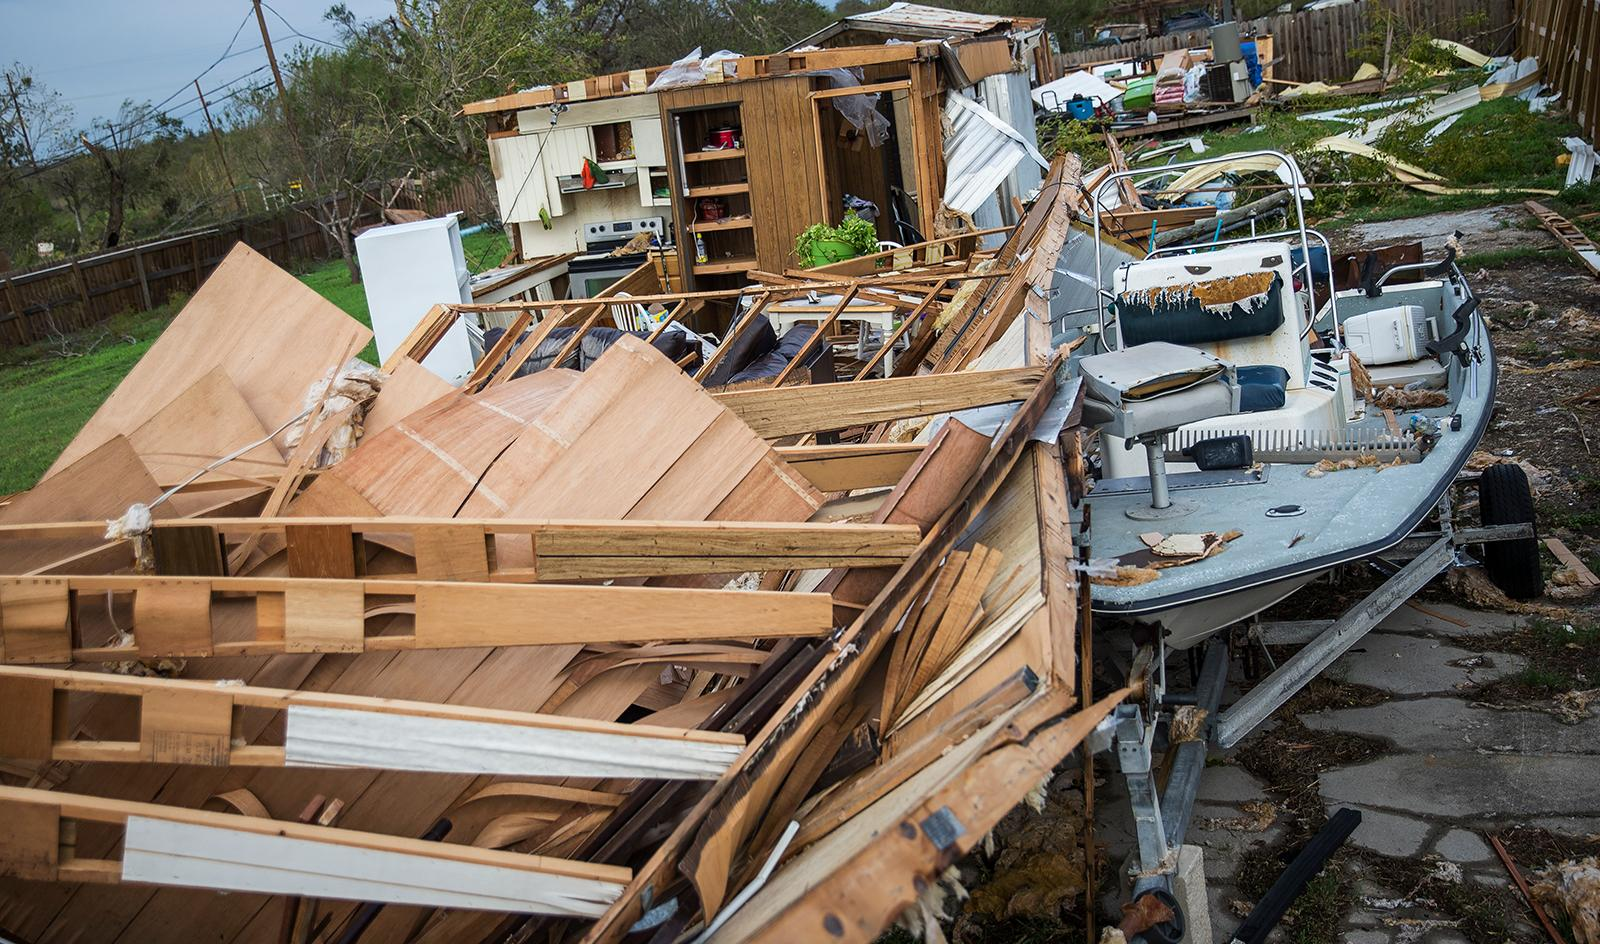 Debris is scattered around a trailer home in the wake of Hurricane Harvey in Refugio, Texas, Monday, Aug. 28, 2017. (Nick Wagner/Austin American-Statesman via AP)